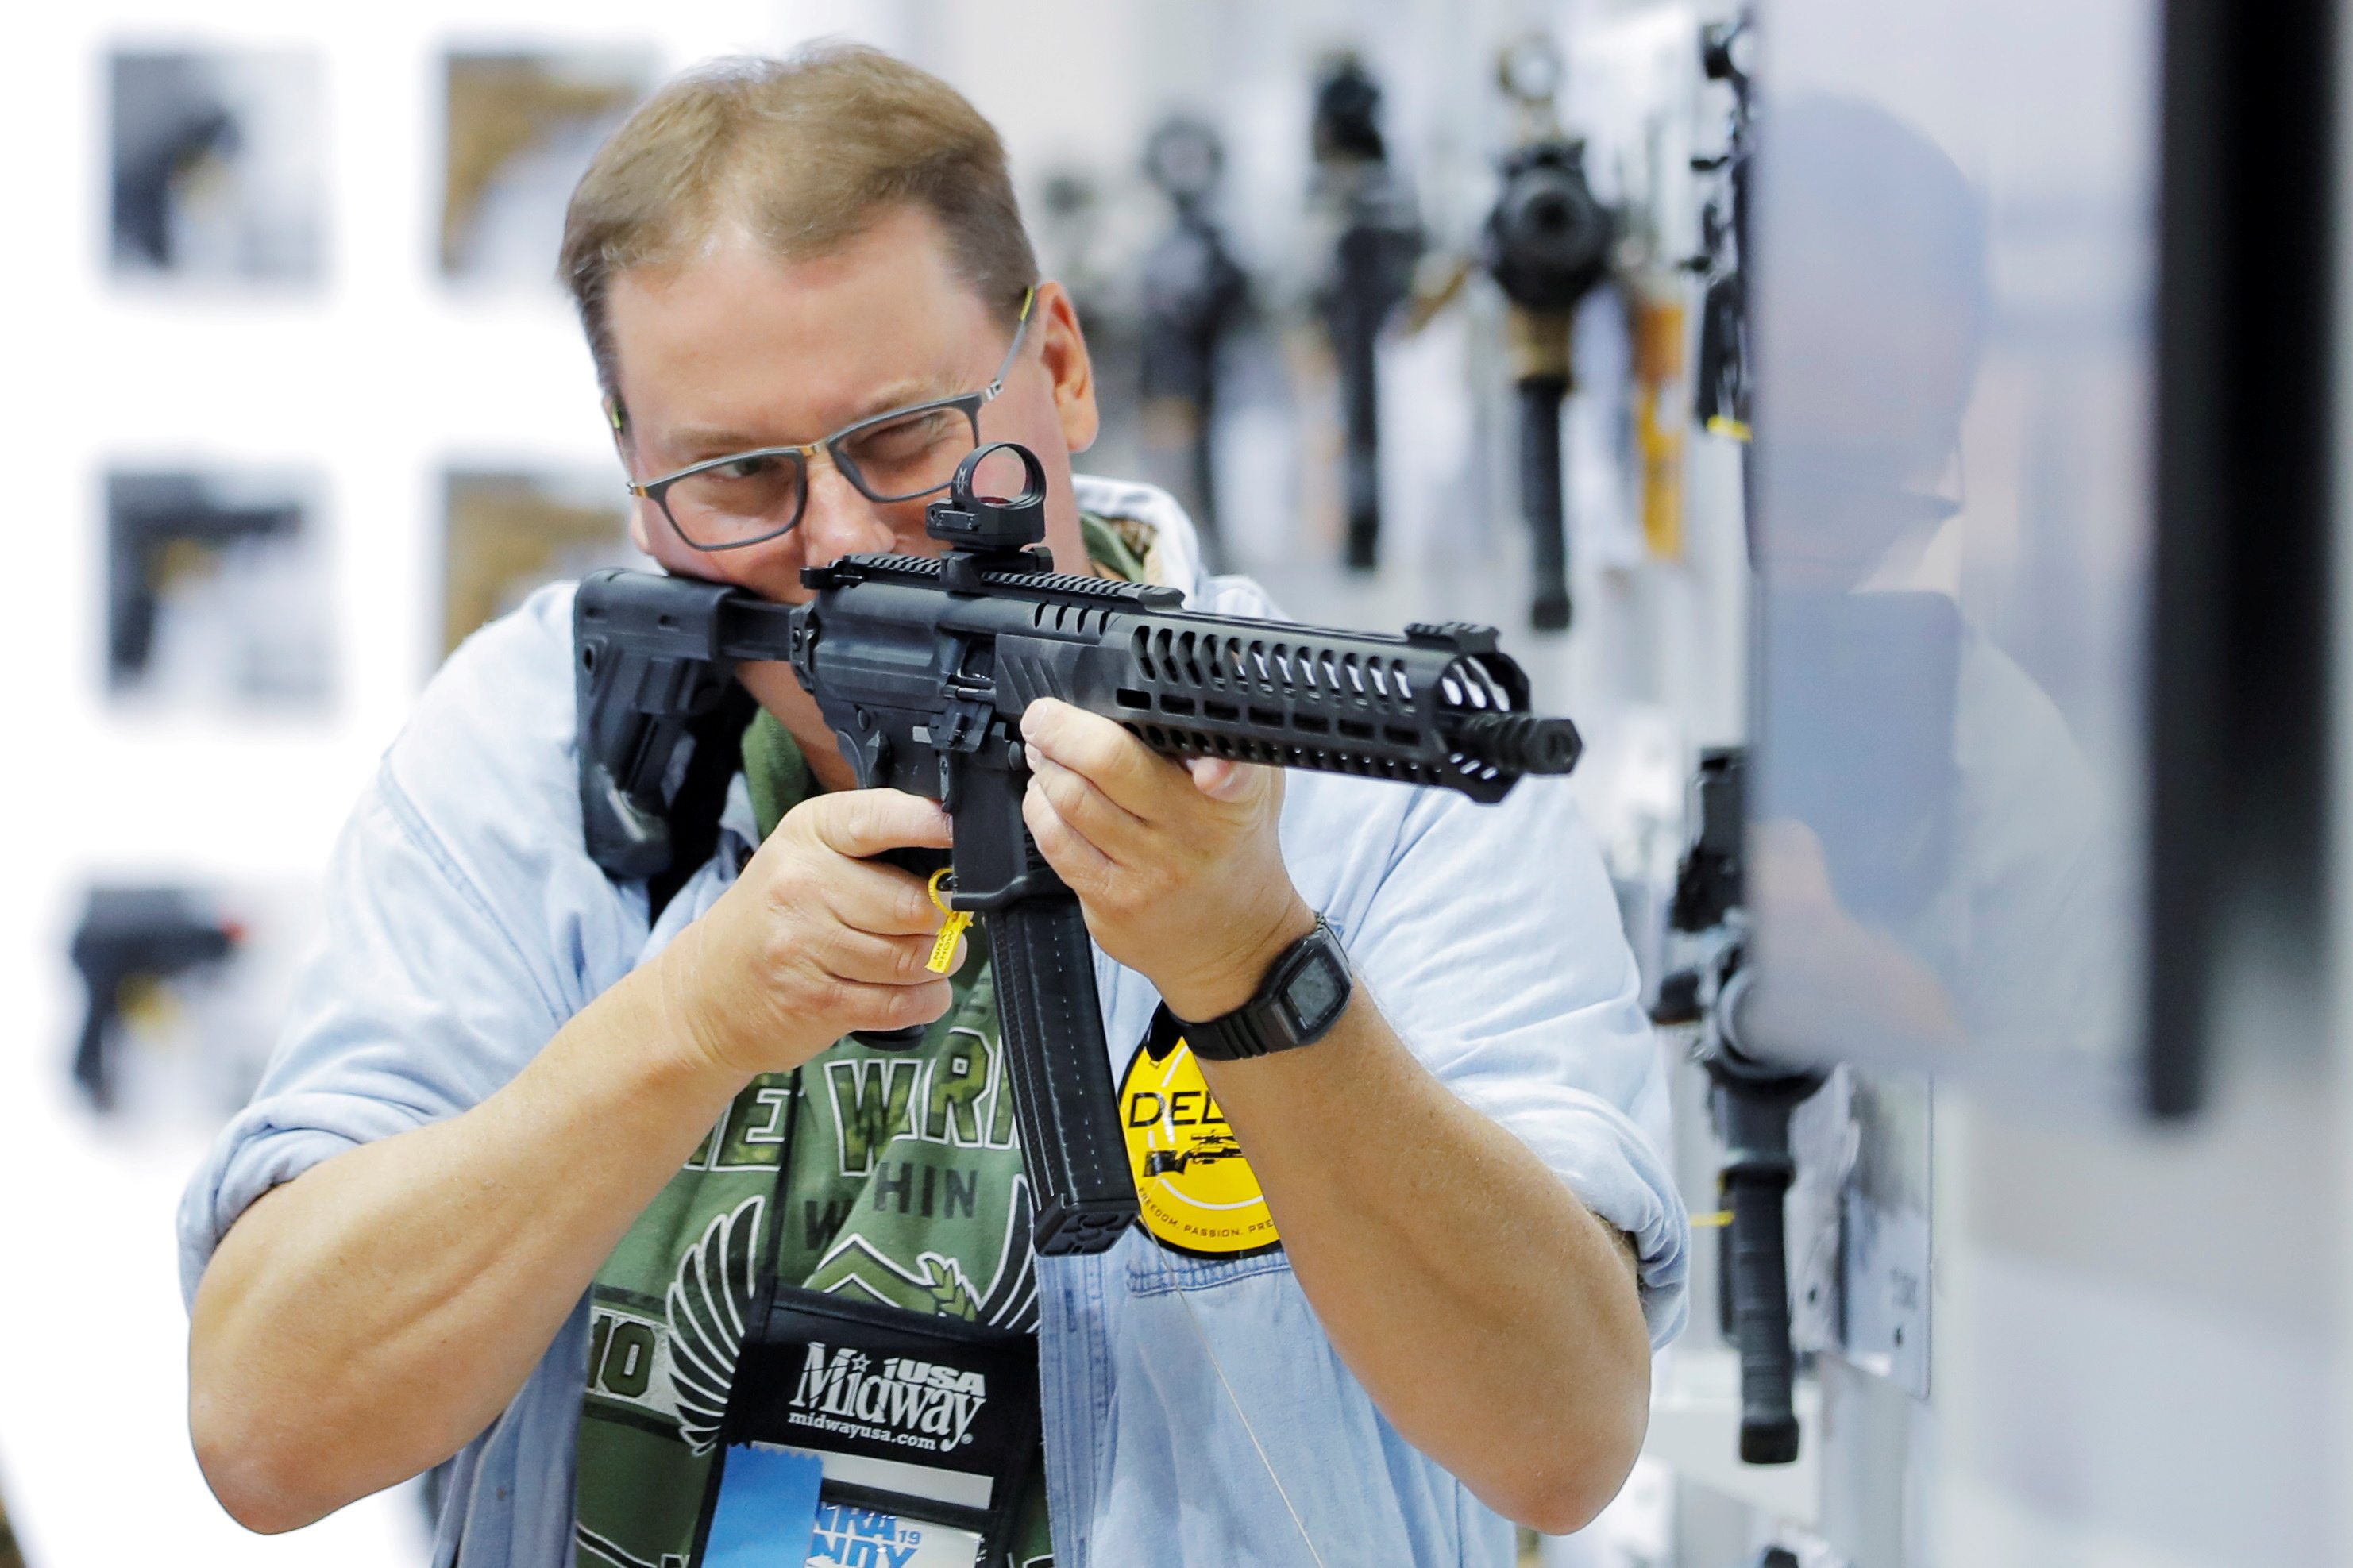 A man handles a rifle inside of the Sig Sauer booth during the National Rifle Association (NRA) annual meeting in Indianapolis, Indiana, U.S., April 28, 2019.  REUTERS/Lucas Jackson/File Photo